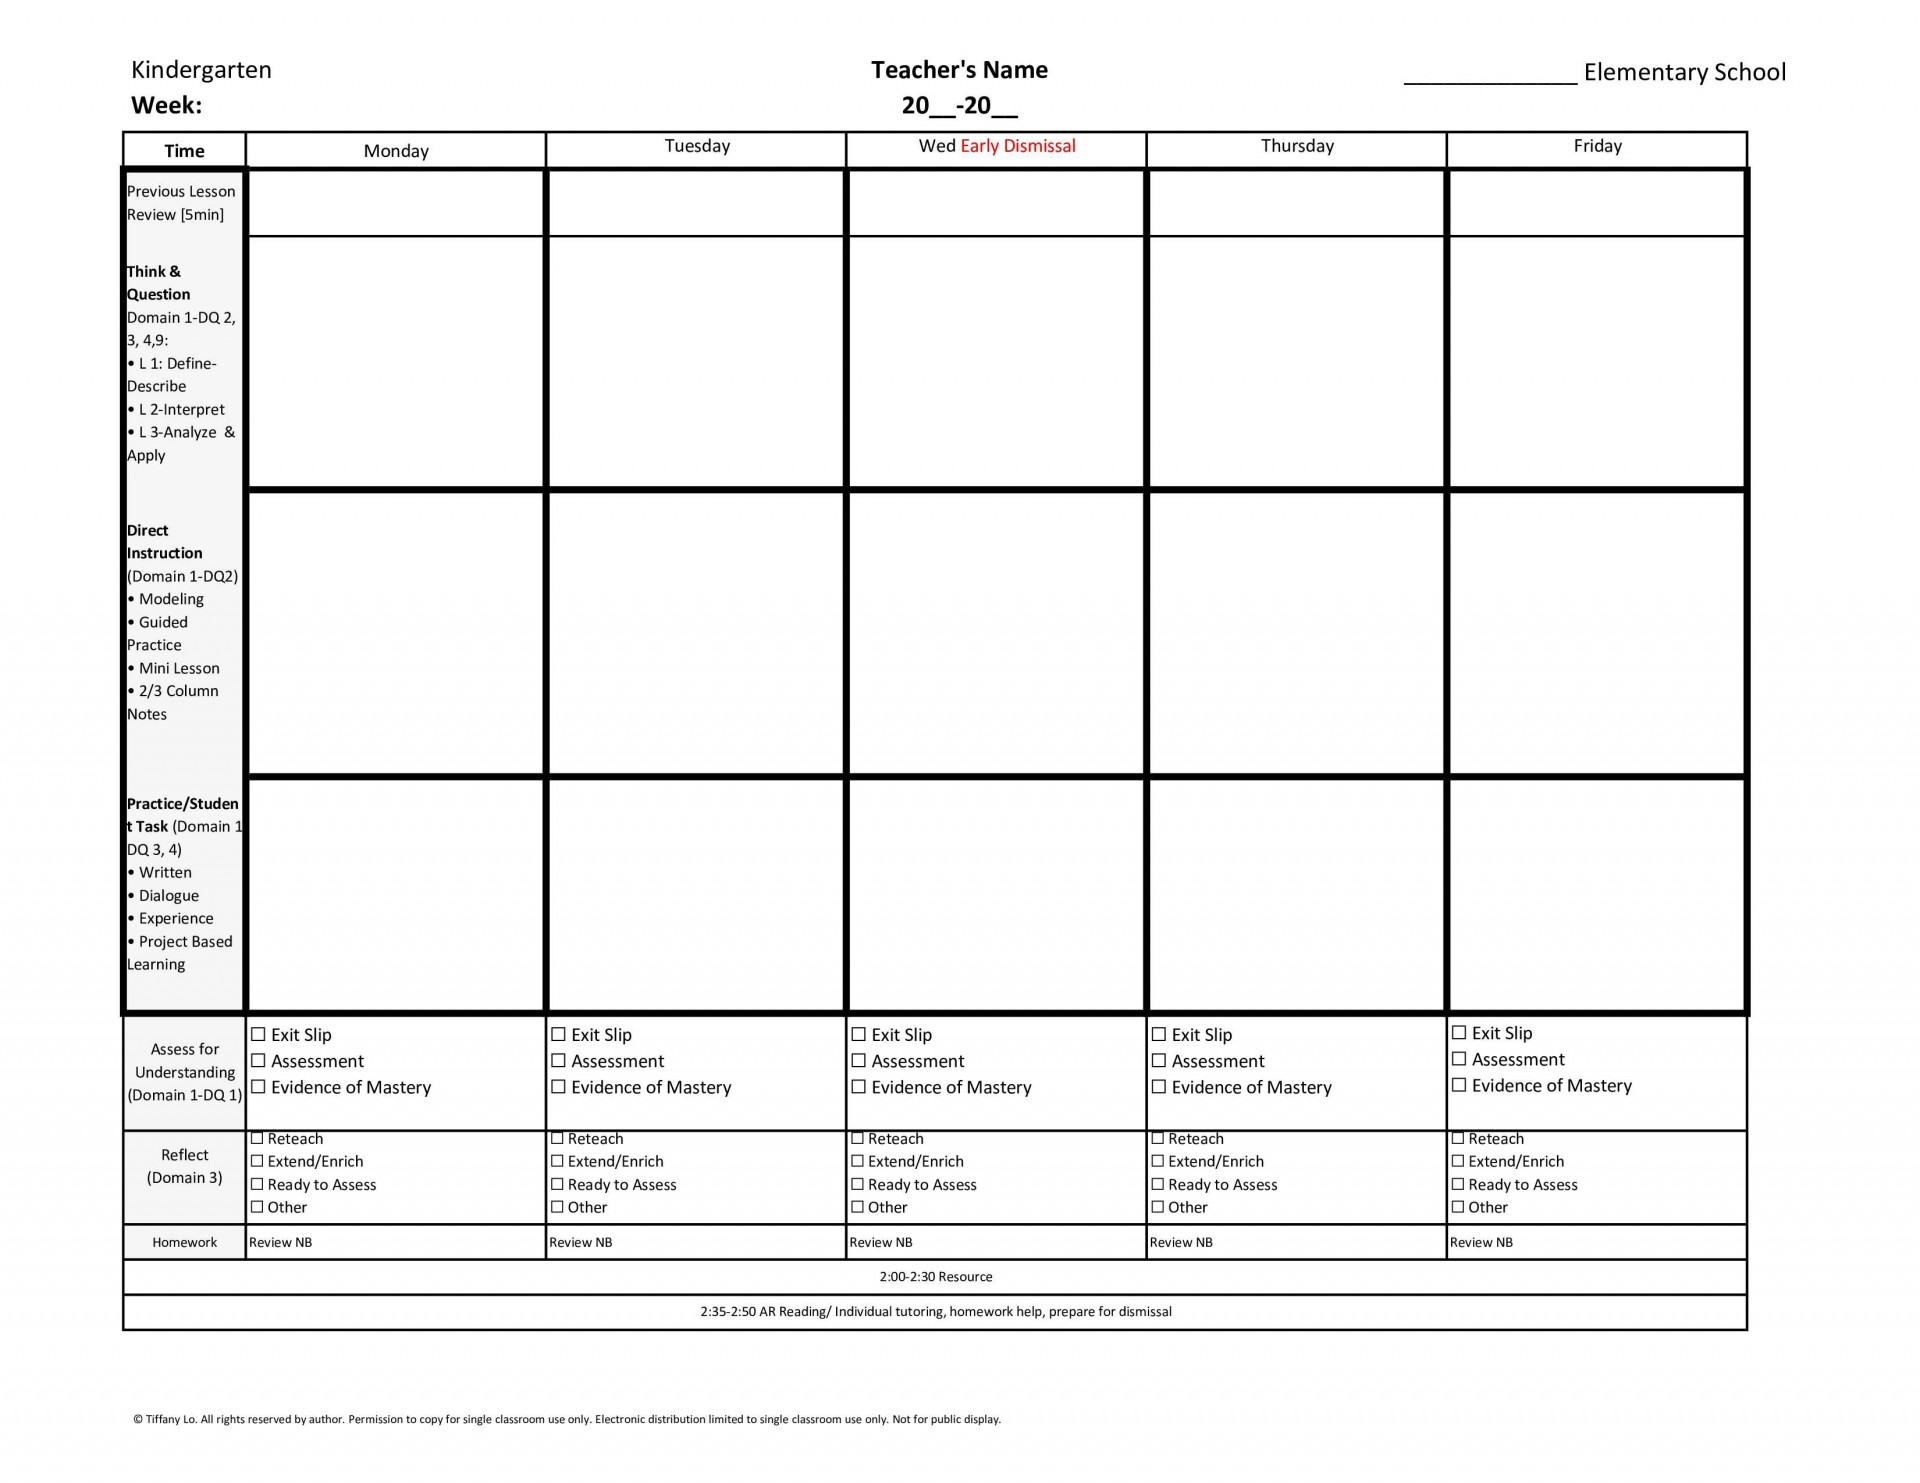 006 Unique Weekly Lesson Plan Template Inspiration  Blank Free High School Danielson Google Doc1920